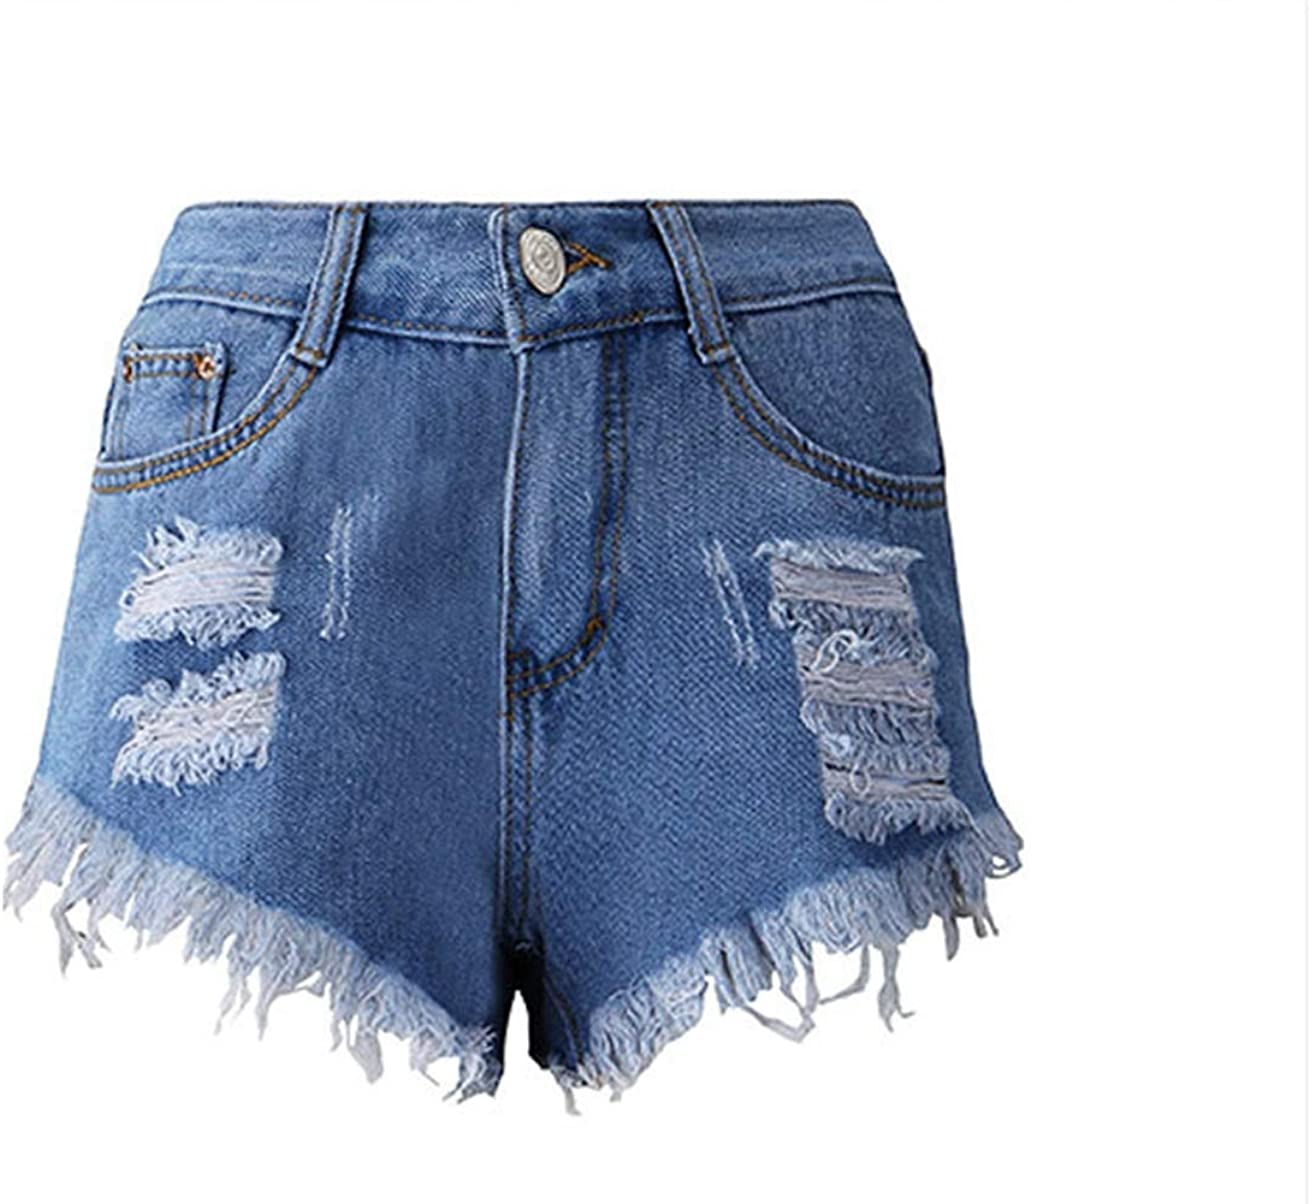 Women's Casual Stretchy Denim Shorts Hot Pants with Pockets